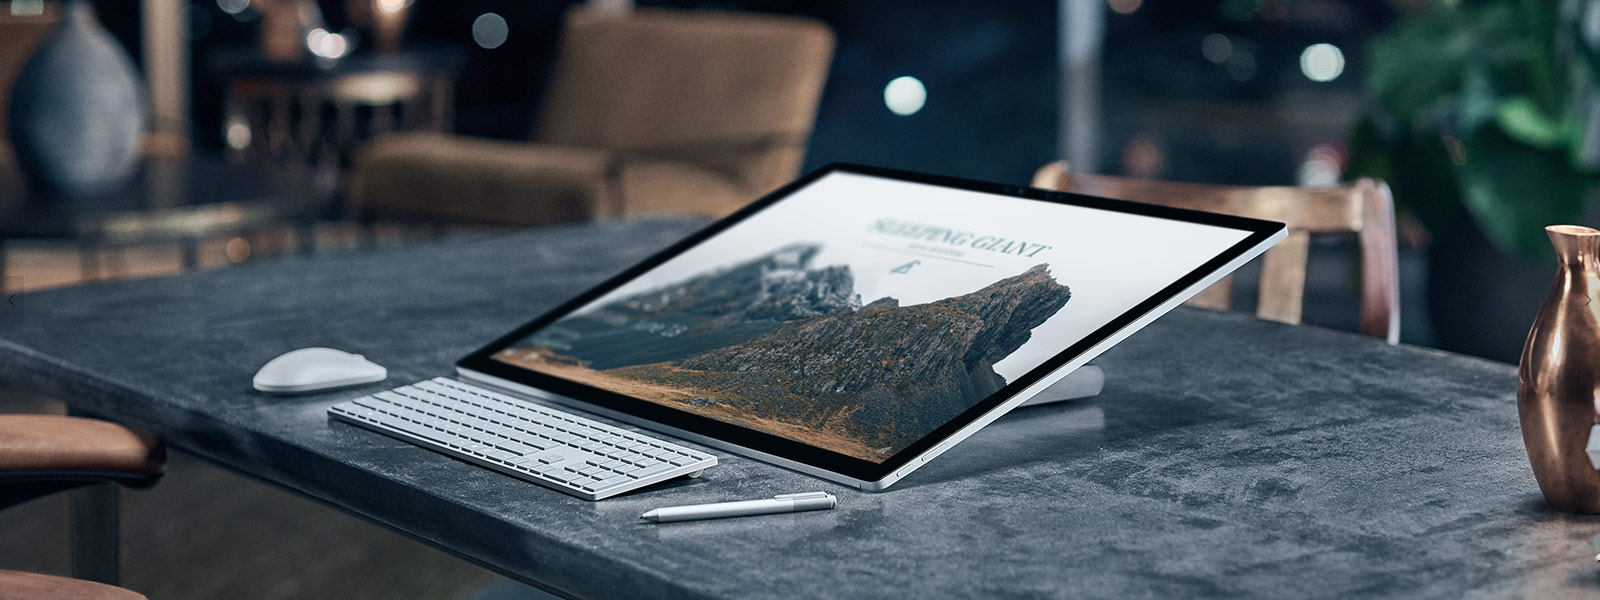 Surface Studio on desk in studio mode